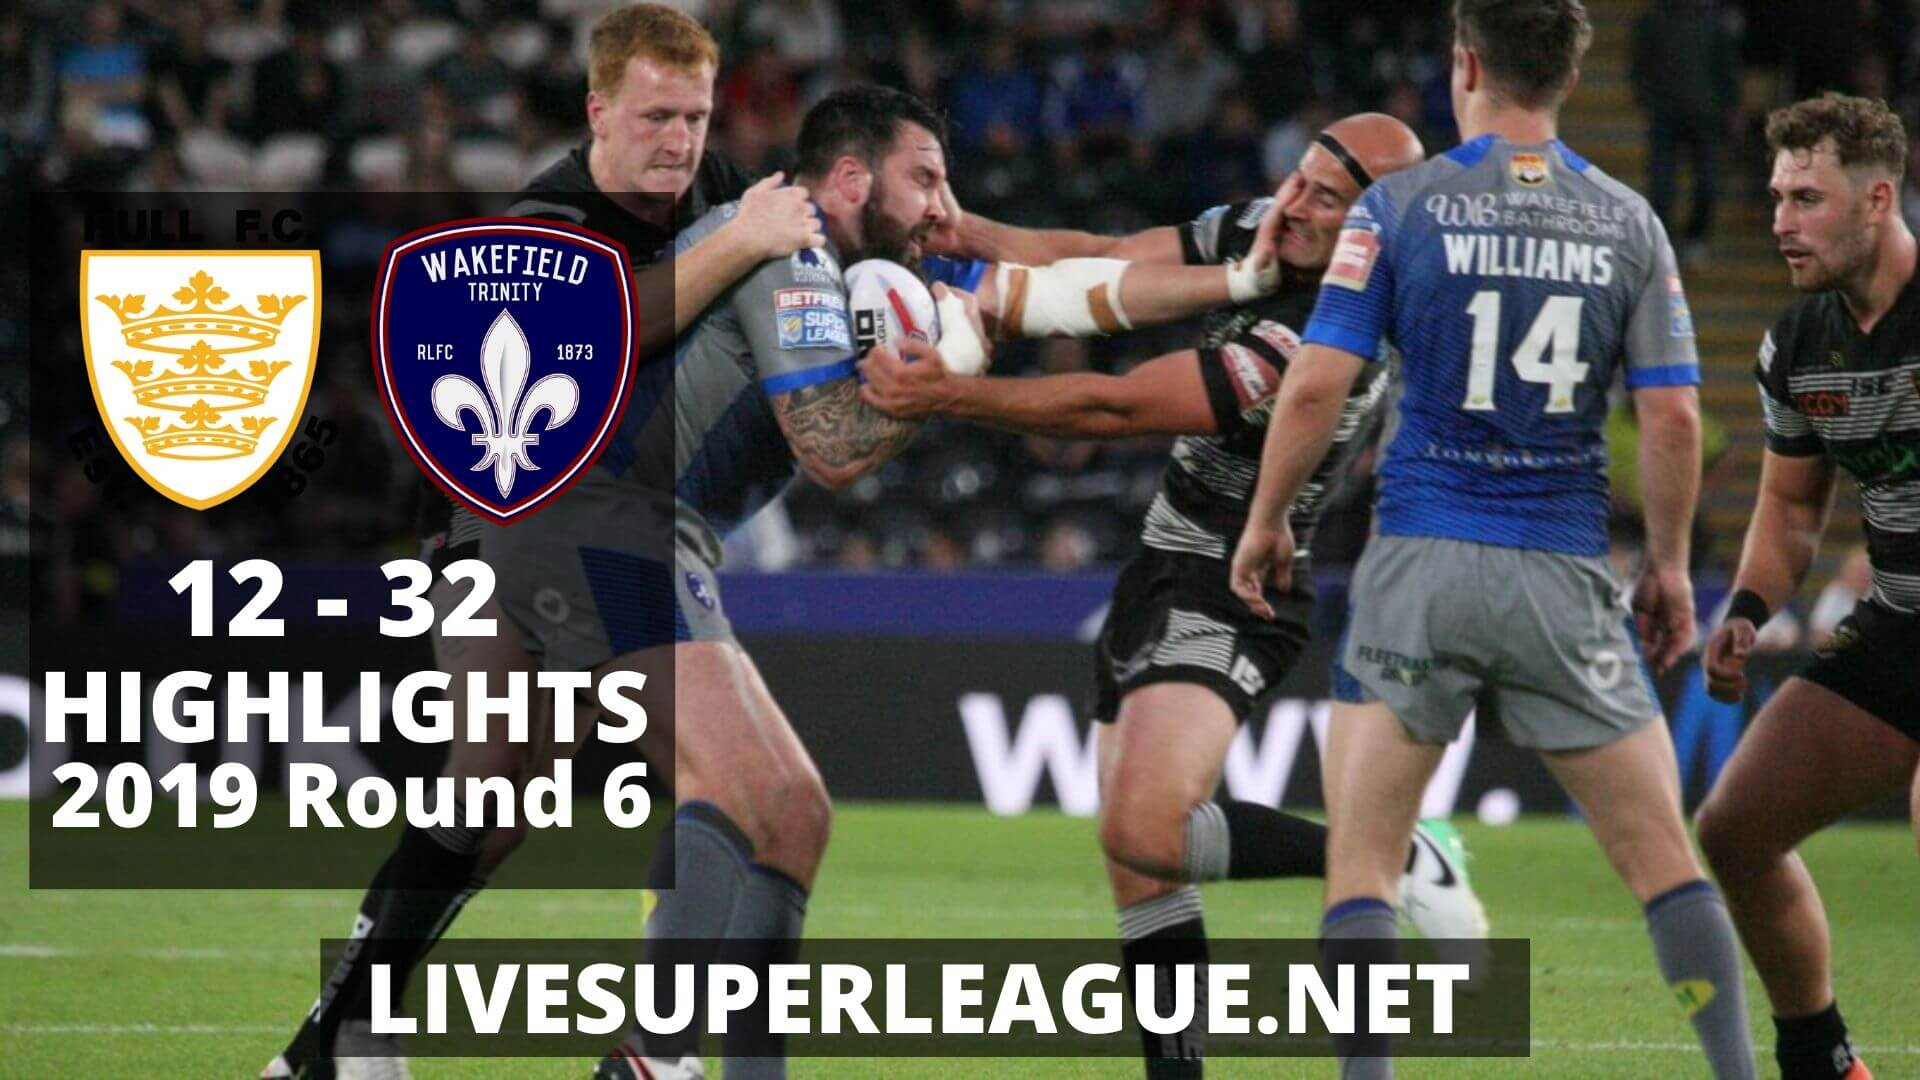 Hull FC Vs Wakefield Trinity Highlights 2019 Round 6